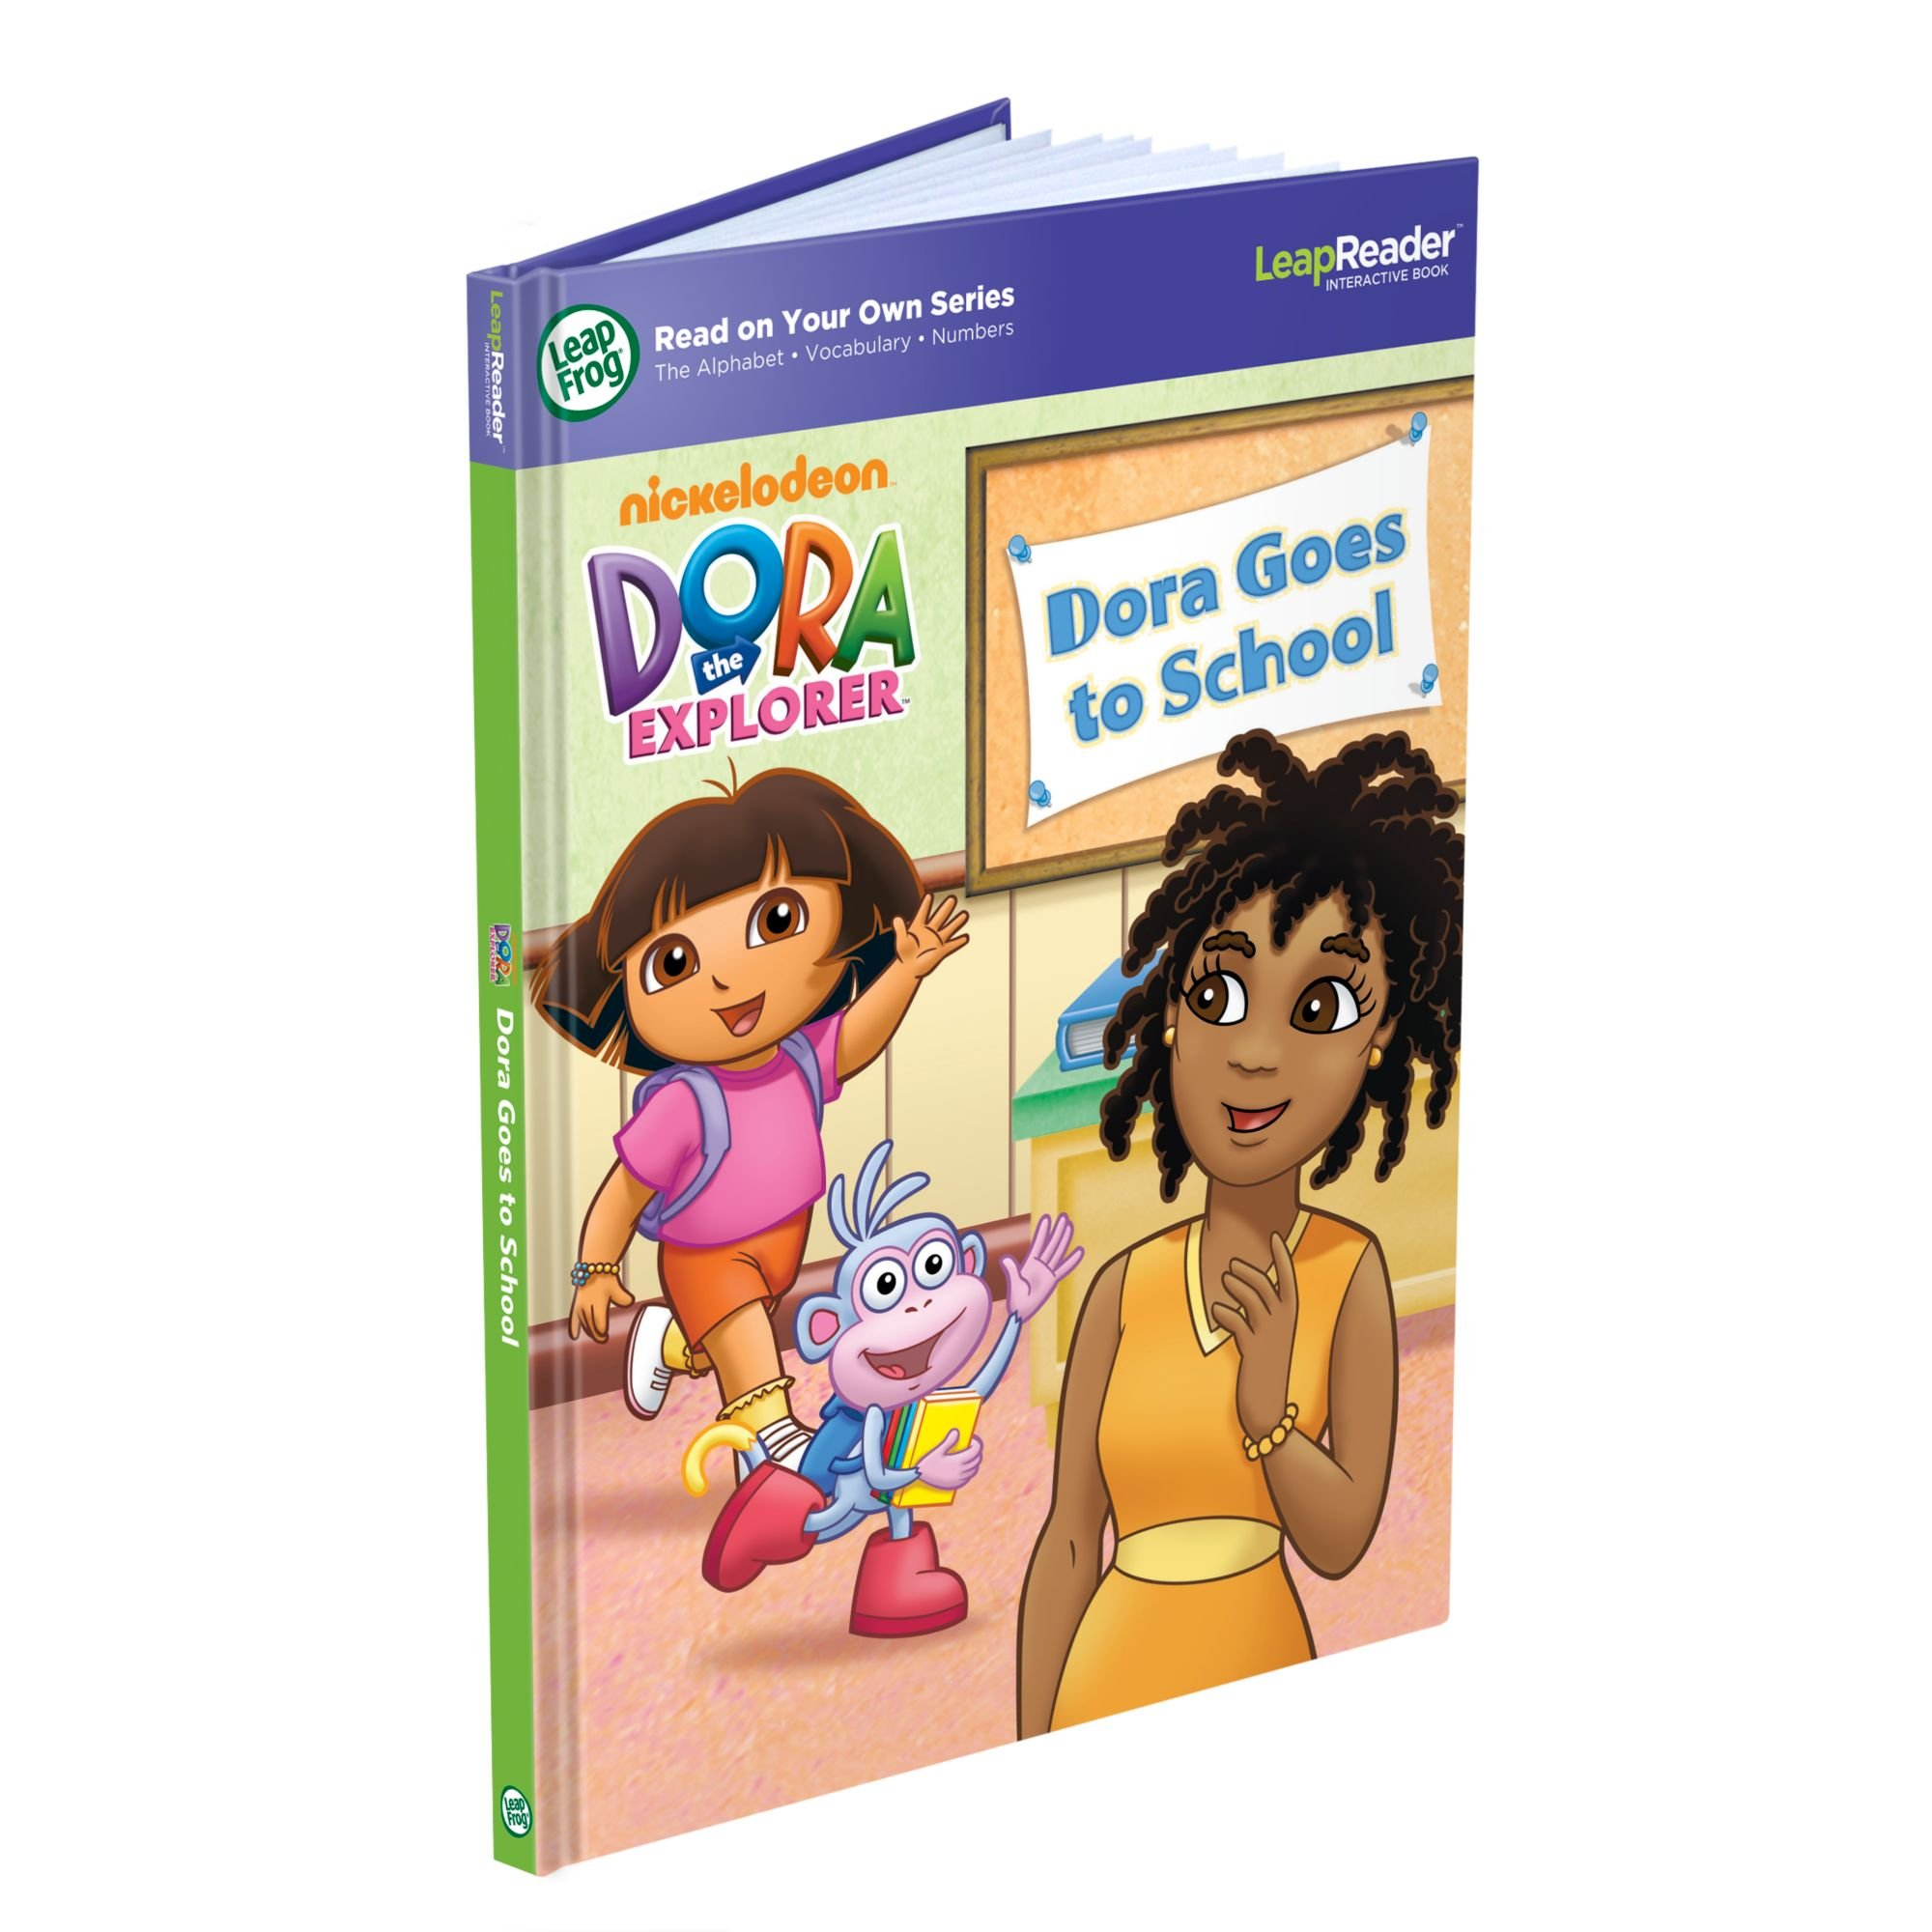 LeapFrog LeapReader Book: Dora Goes to School (works with Tag) by LeapFrog (Image #1)